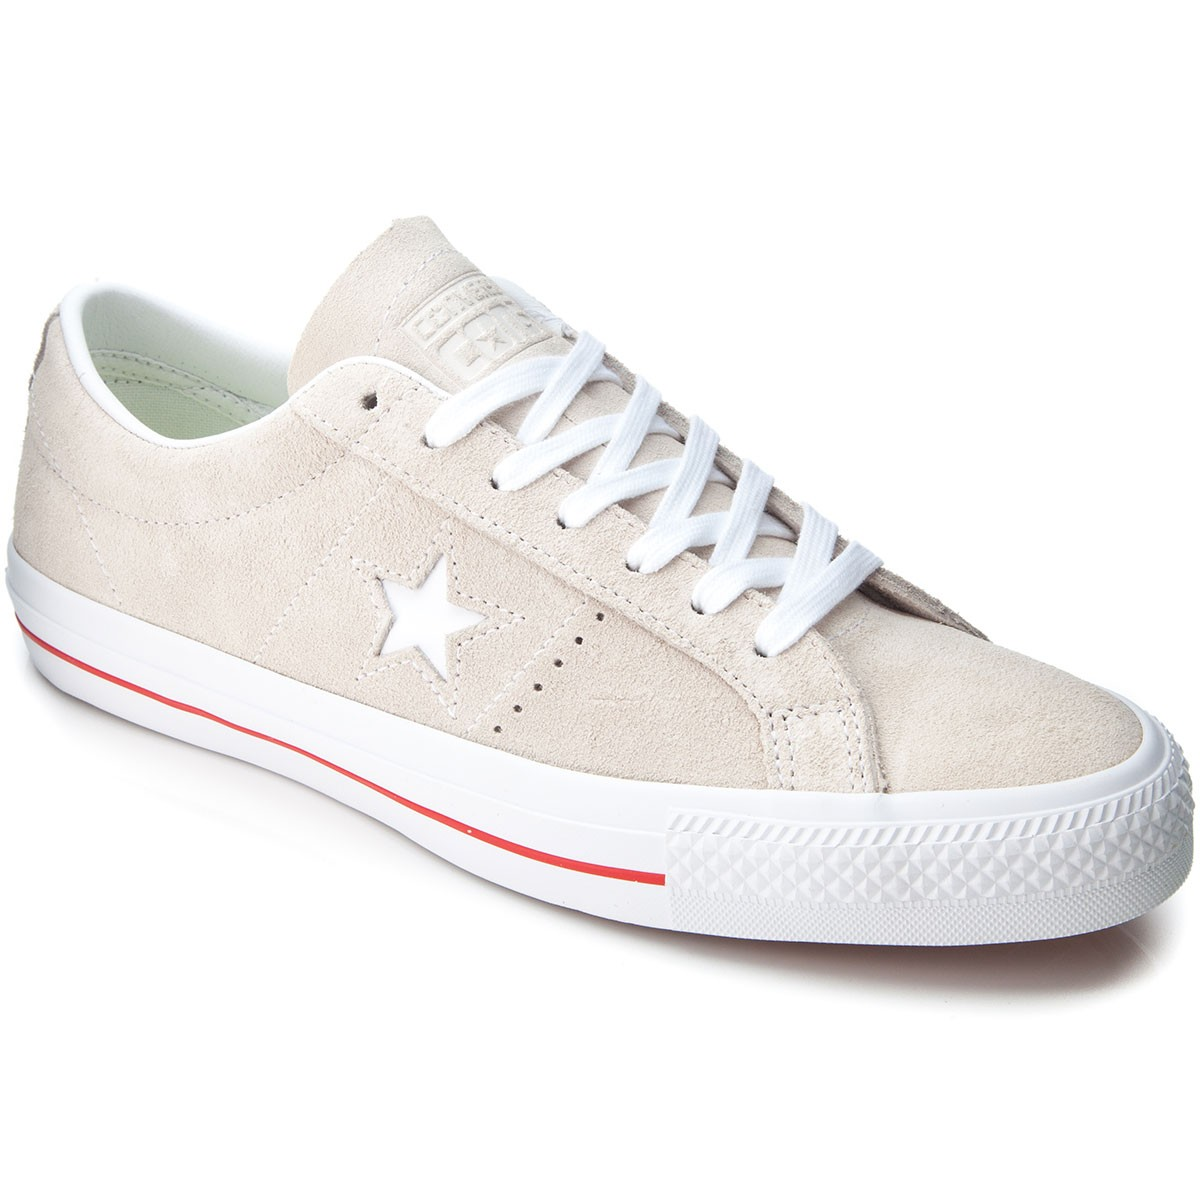 Converse One Star Skate Shoes